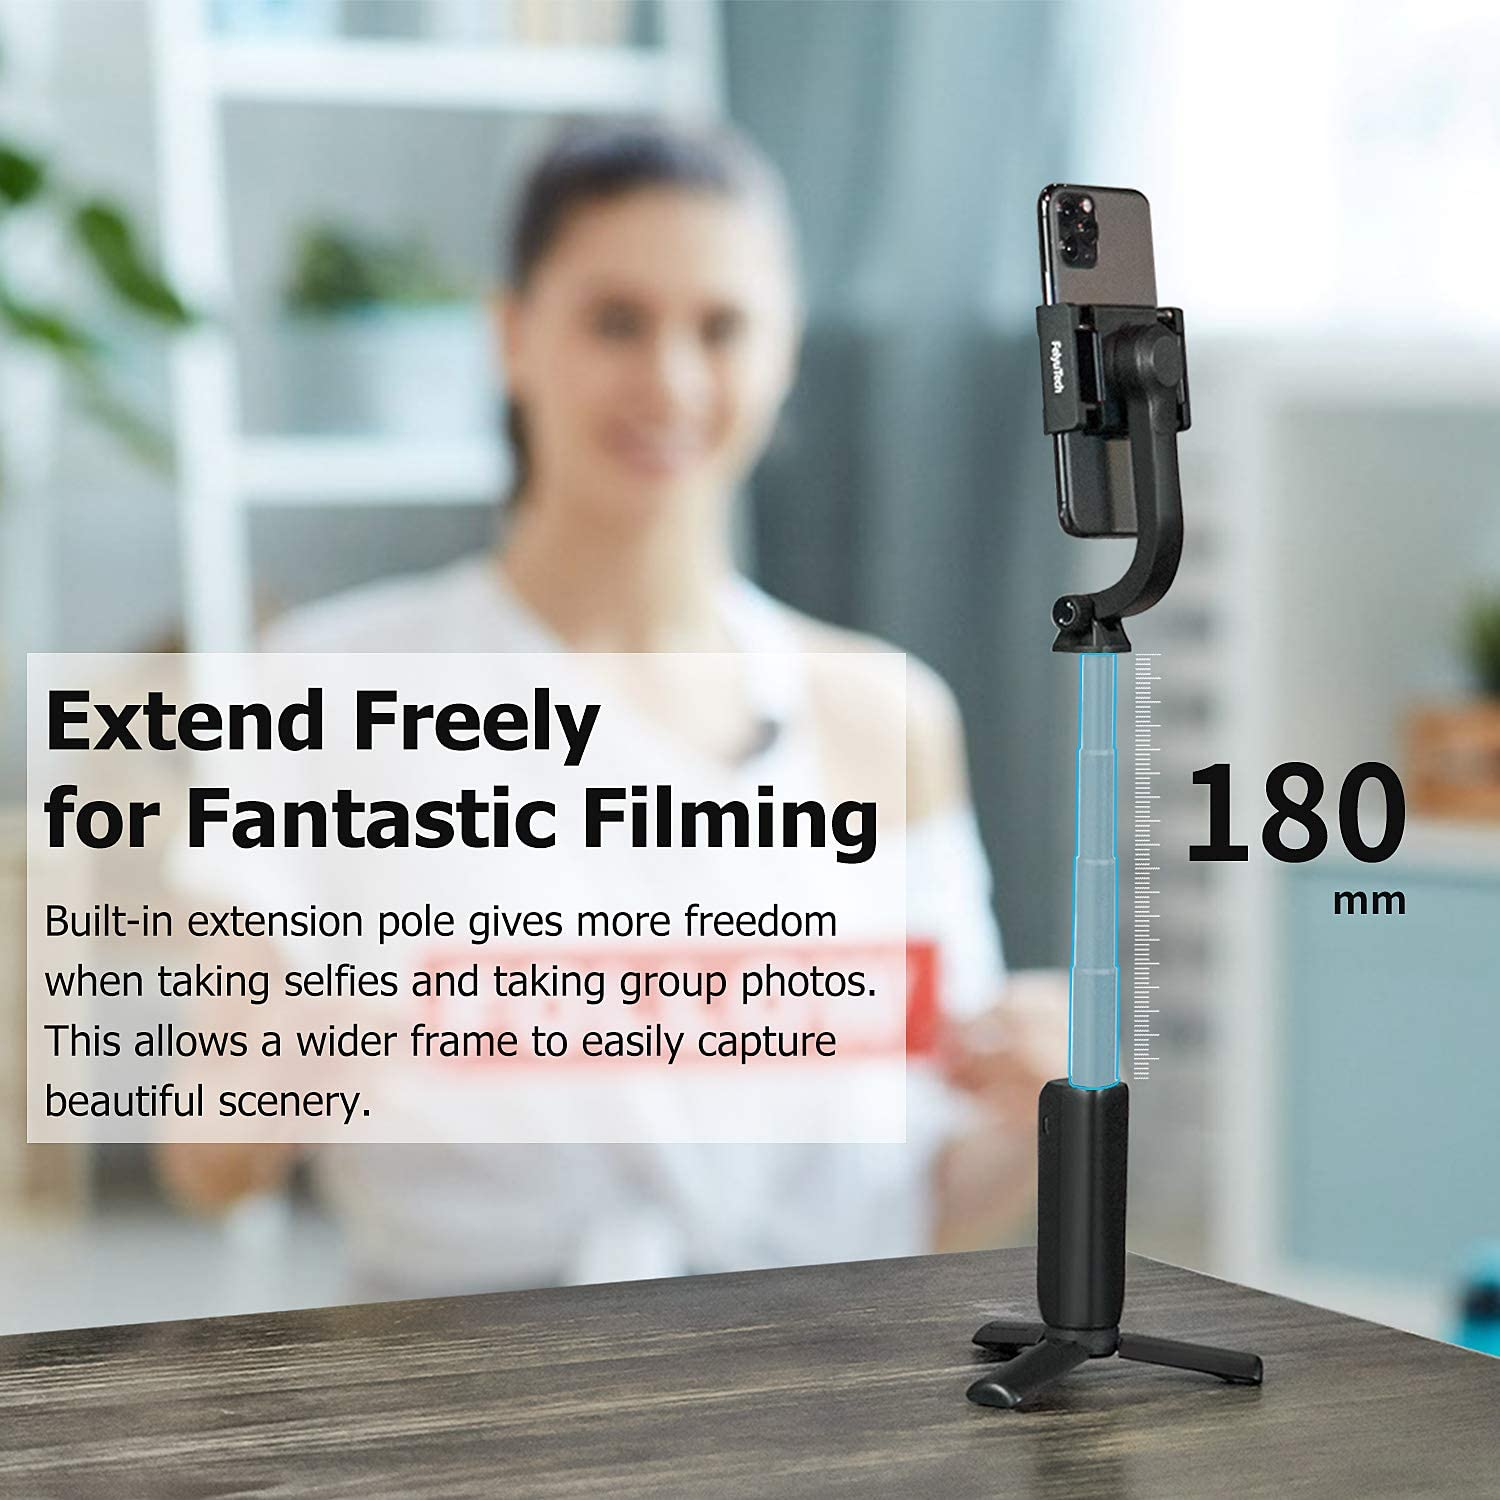 FeiyuTech Vimble One FeiyuTech Vimble One Smartphone Gimbal Stabilizer for iPhone 11Pro Max//X//XR//8//7 for Android Phones Extendable Foldable Pocket Gimbal Selfie Stick FeiyuOn APP Control